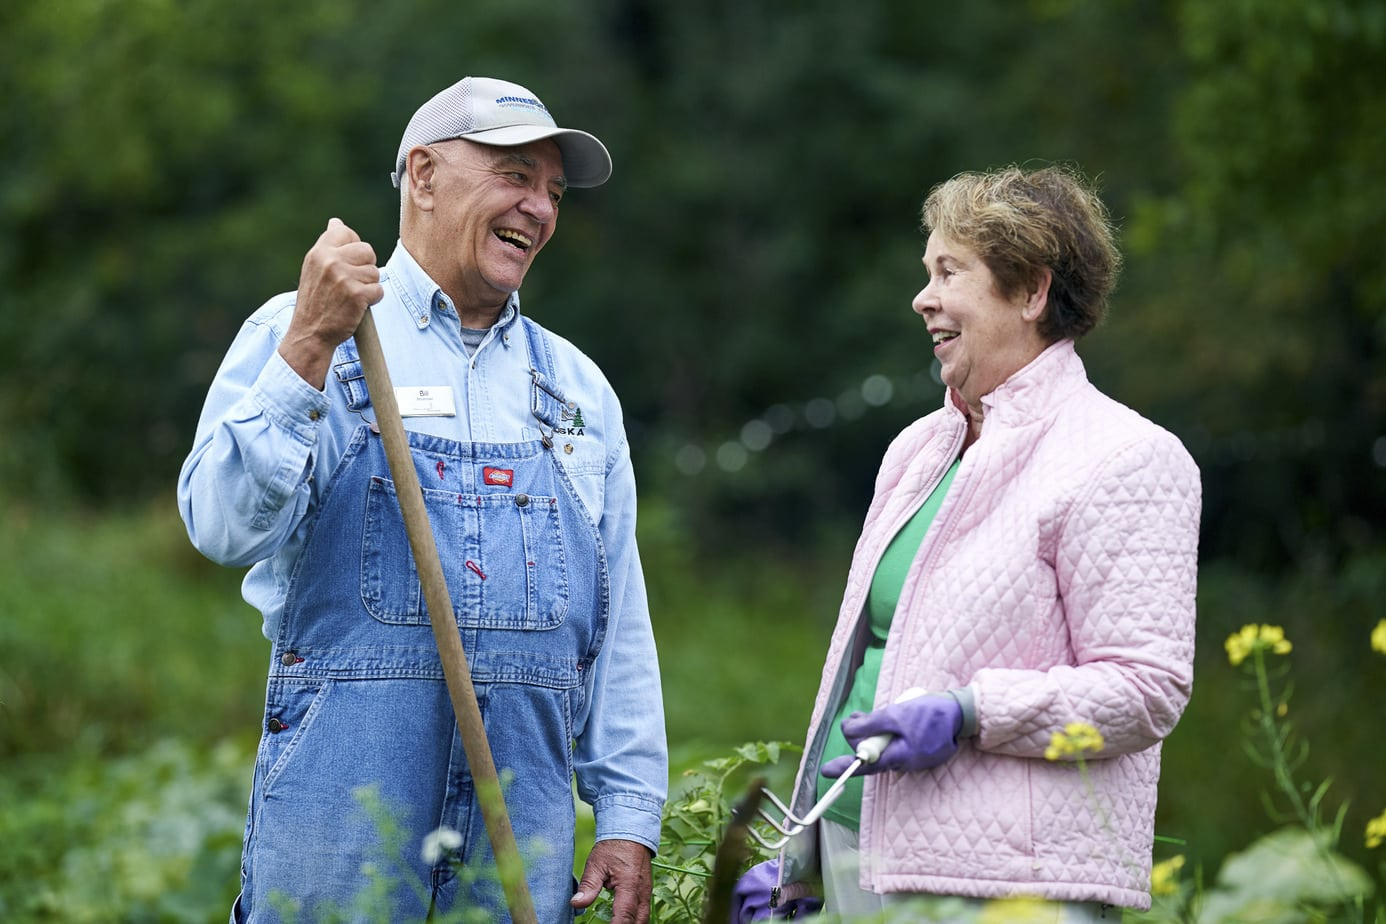 Retirement community photography. Active seniors gardening.